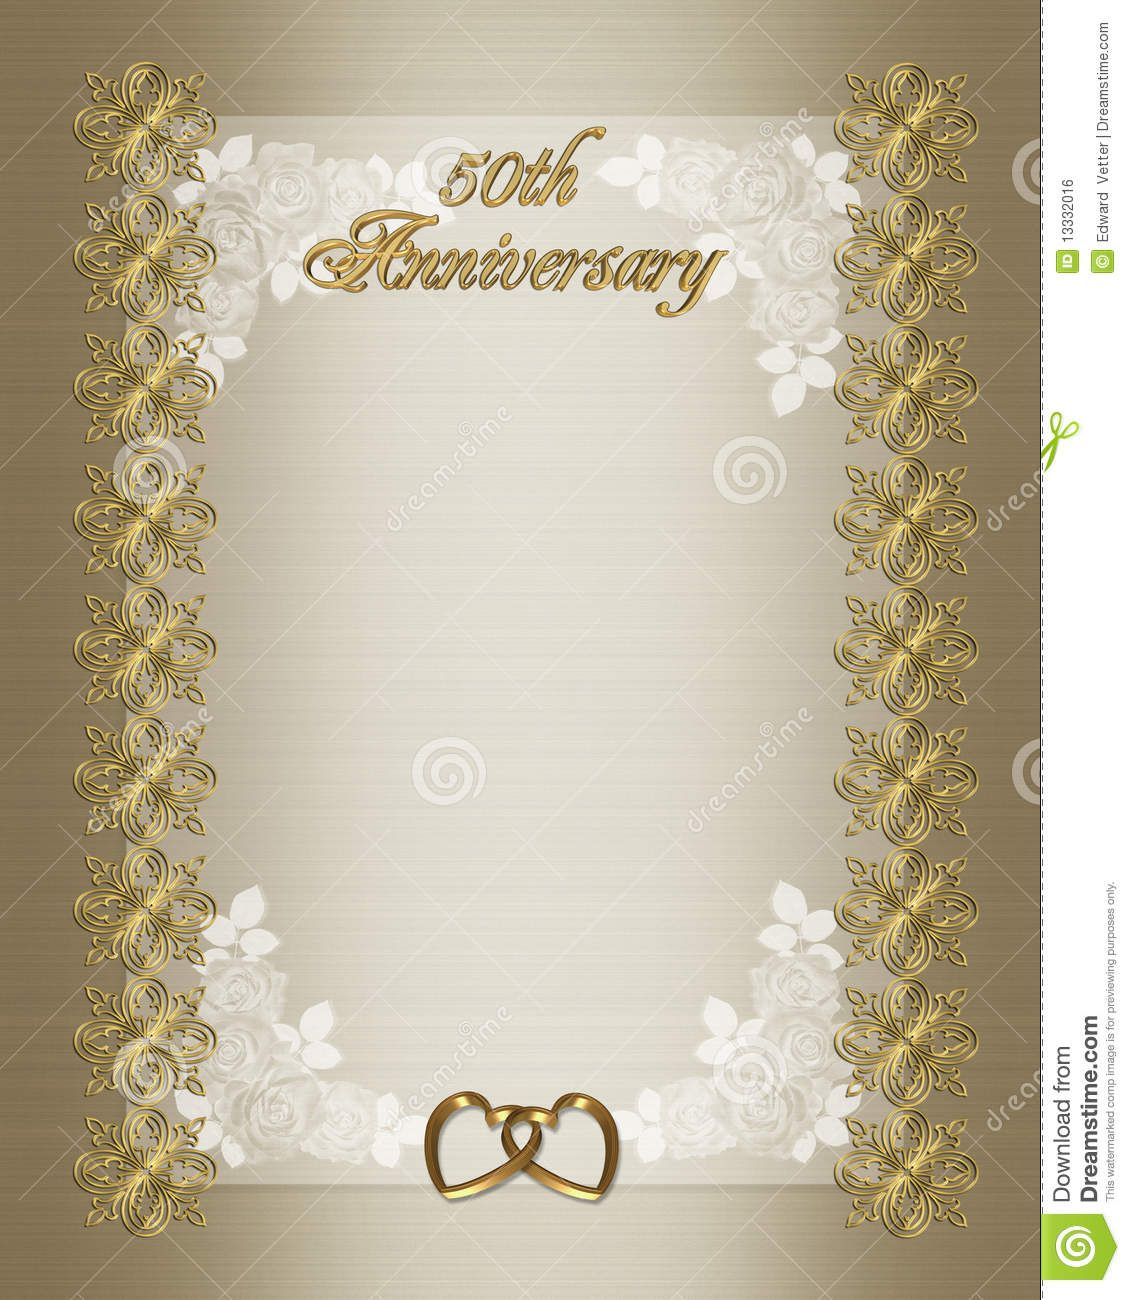 007 Breathtaking 50th Anniversary Invitation Template Free High Resolution  For Word Golden Wedding DownloadFull